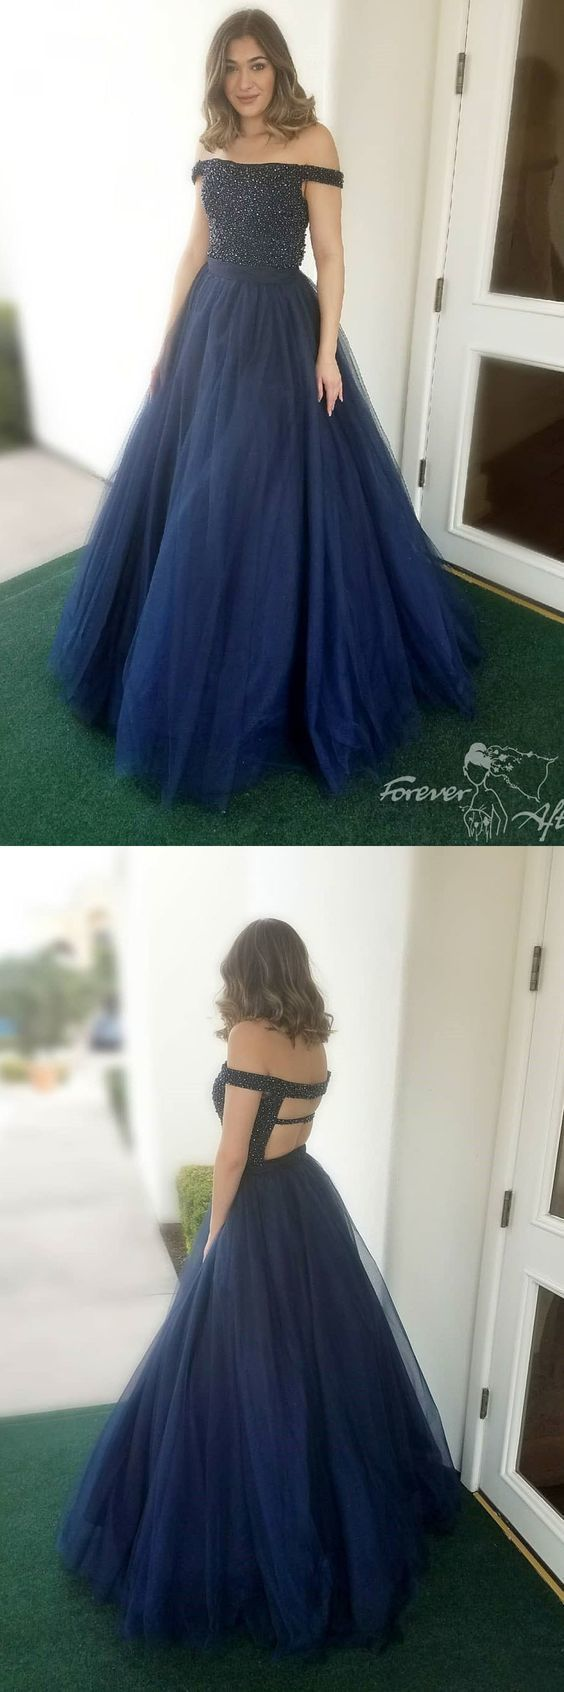 Long prom dress off the shoulder prom dress ball gown party dress